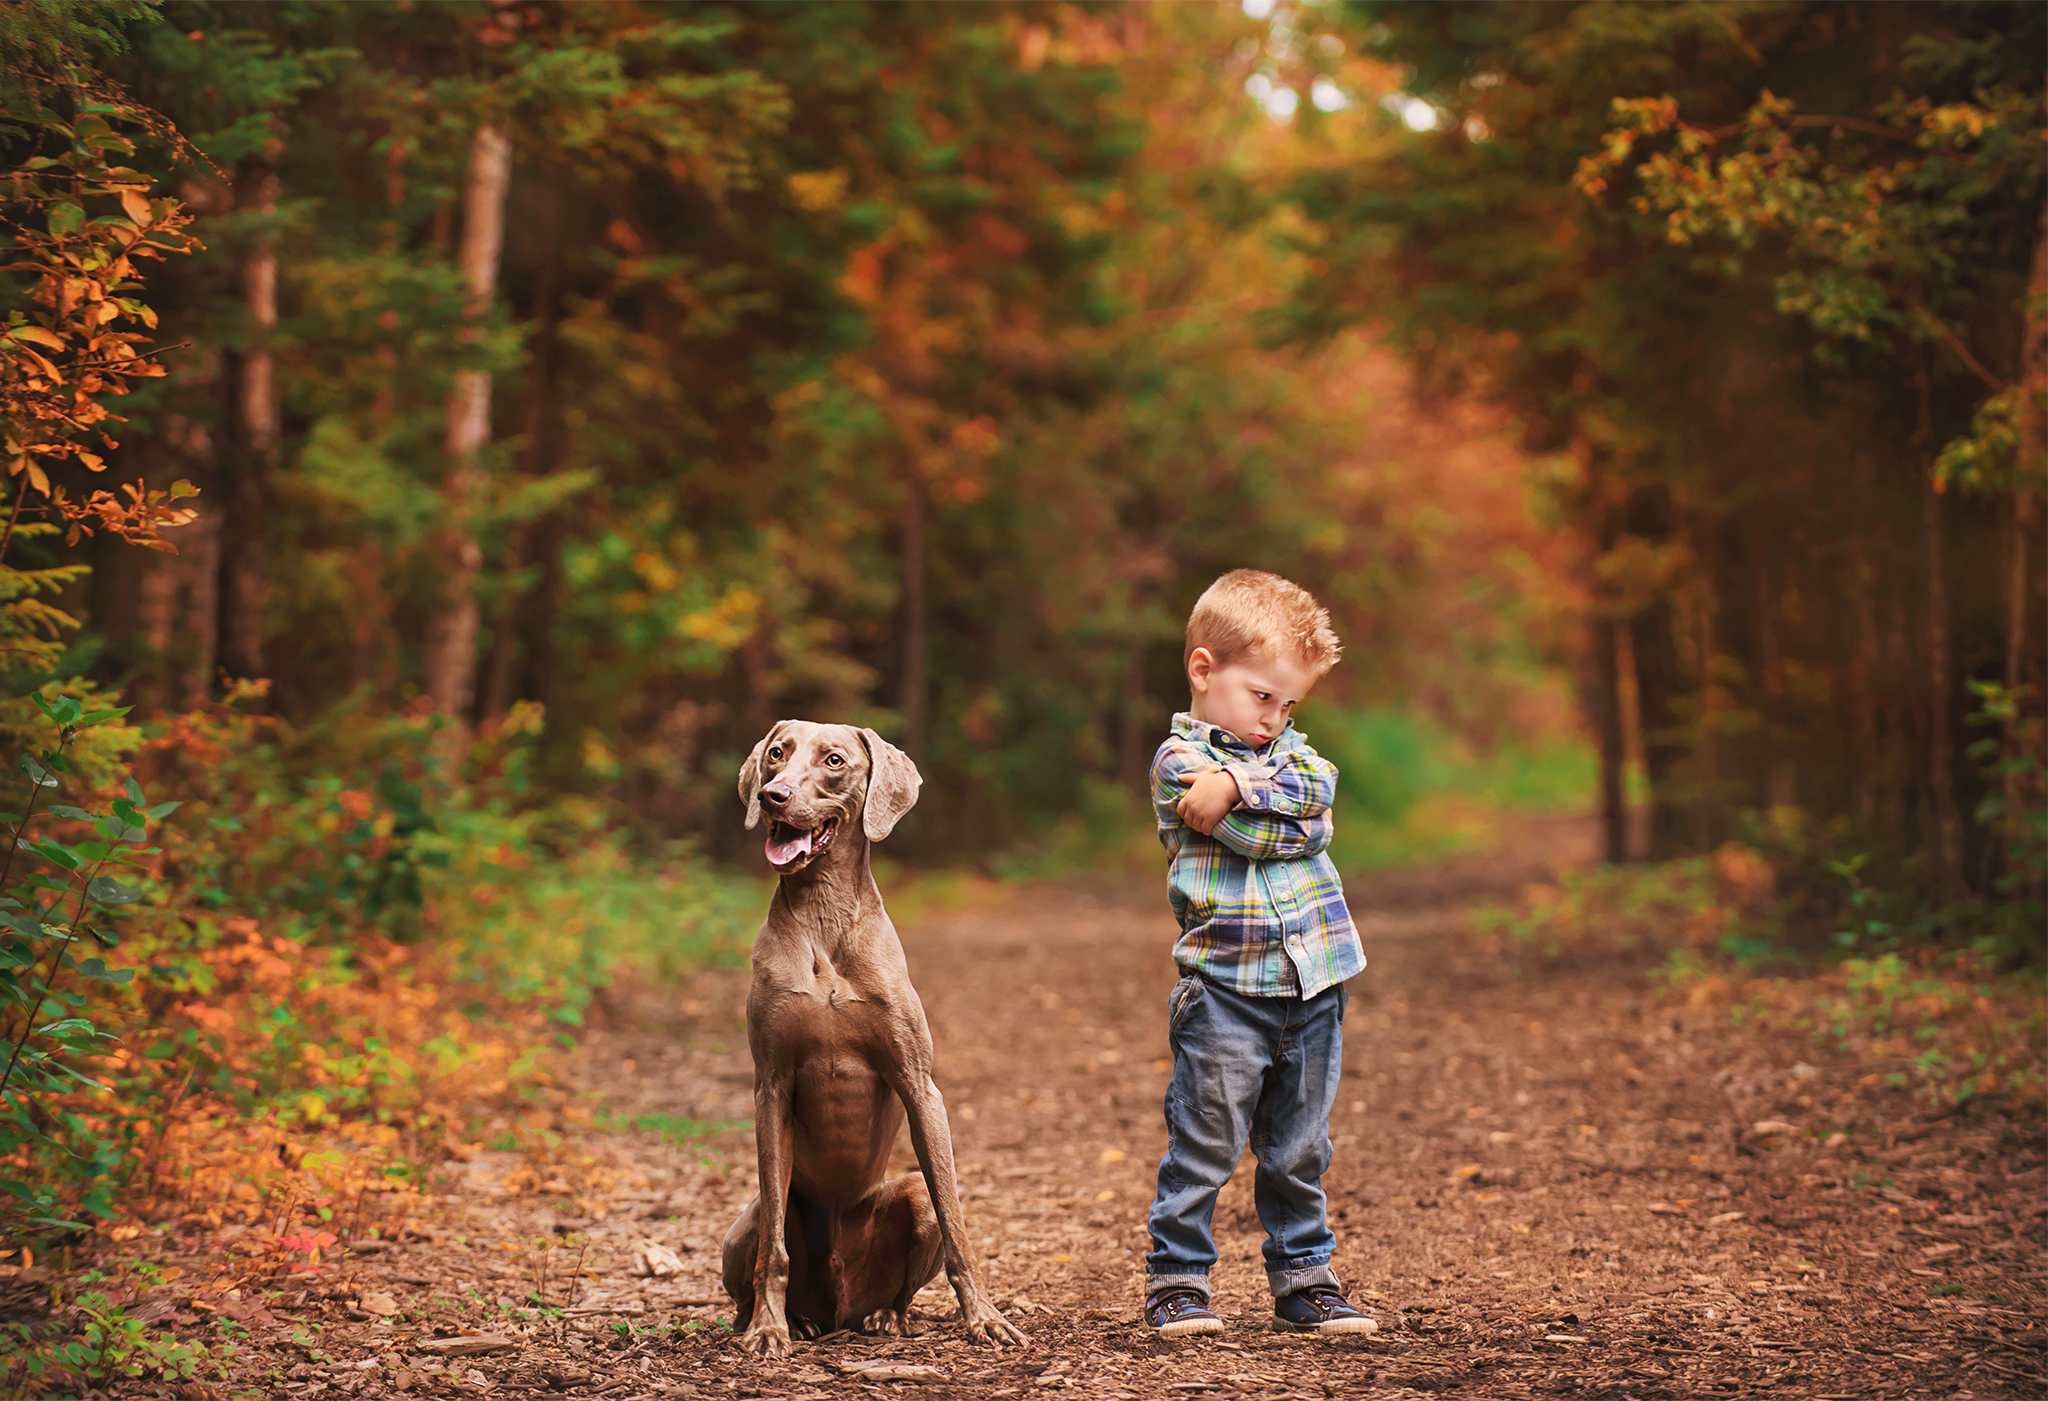 A boy and his dog have a memorable moment in YMM and it's captured in photography to treasure forever